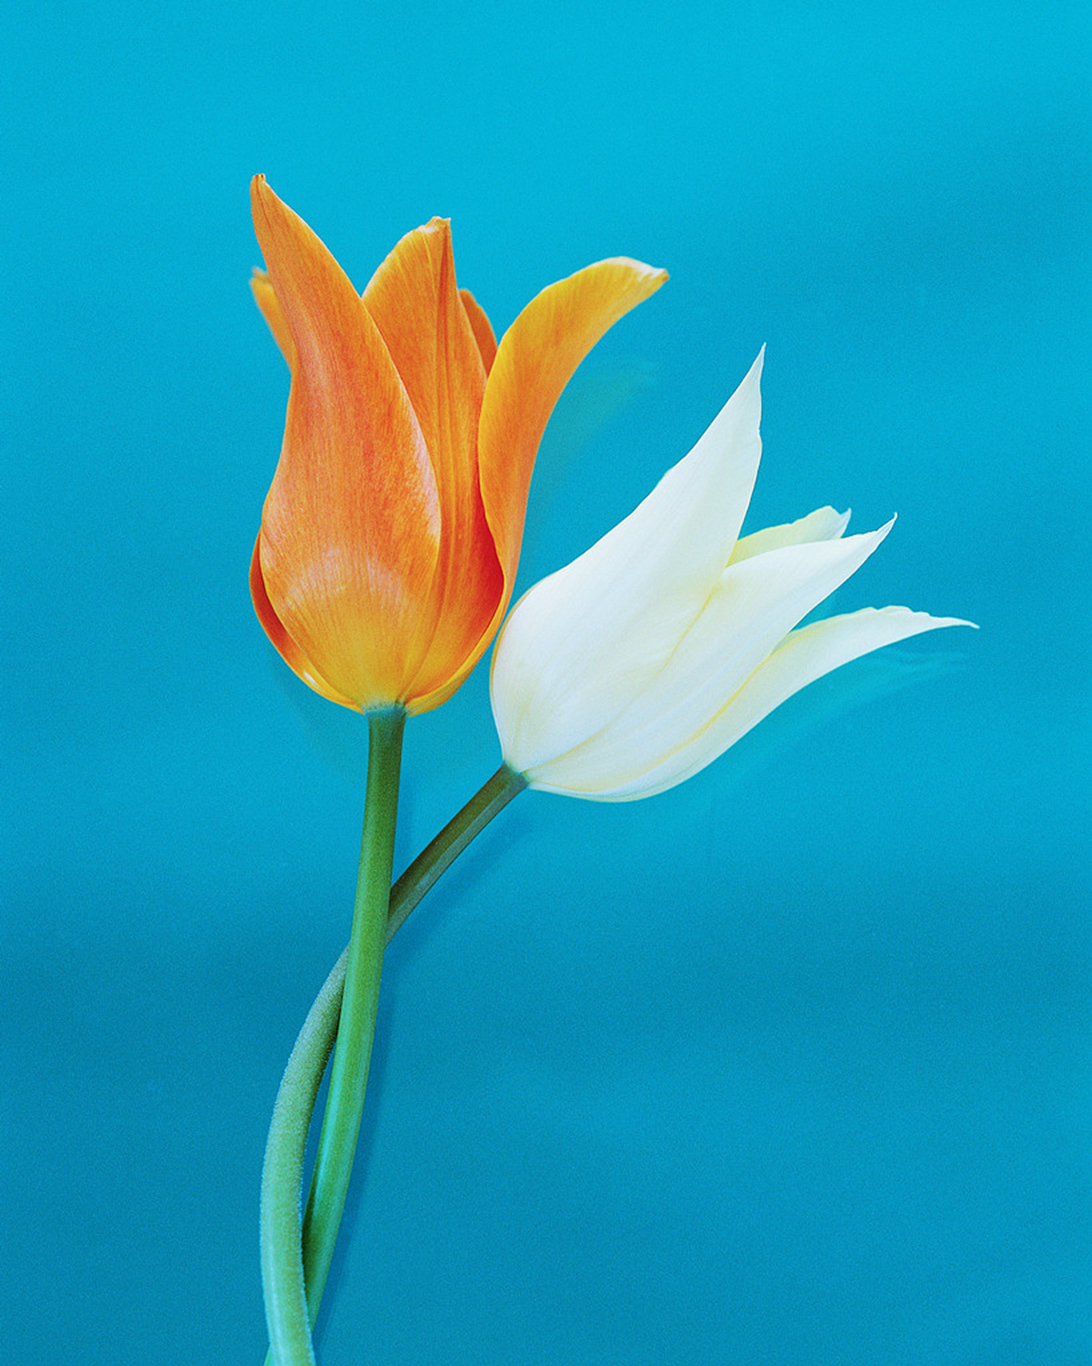 Orange and white tulip against a blue background | Brewster By the Sea Cape Cod Inn | Brewster, MA